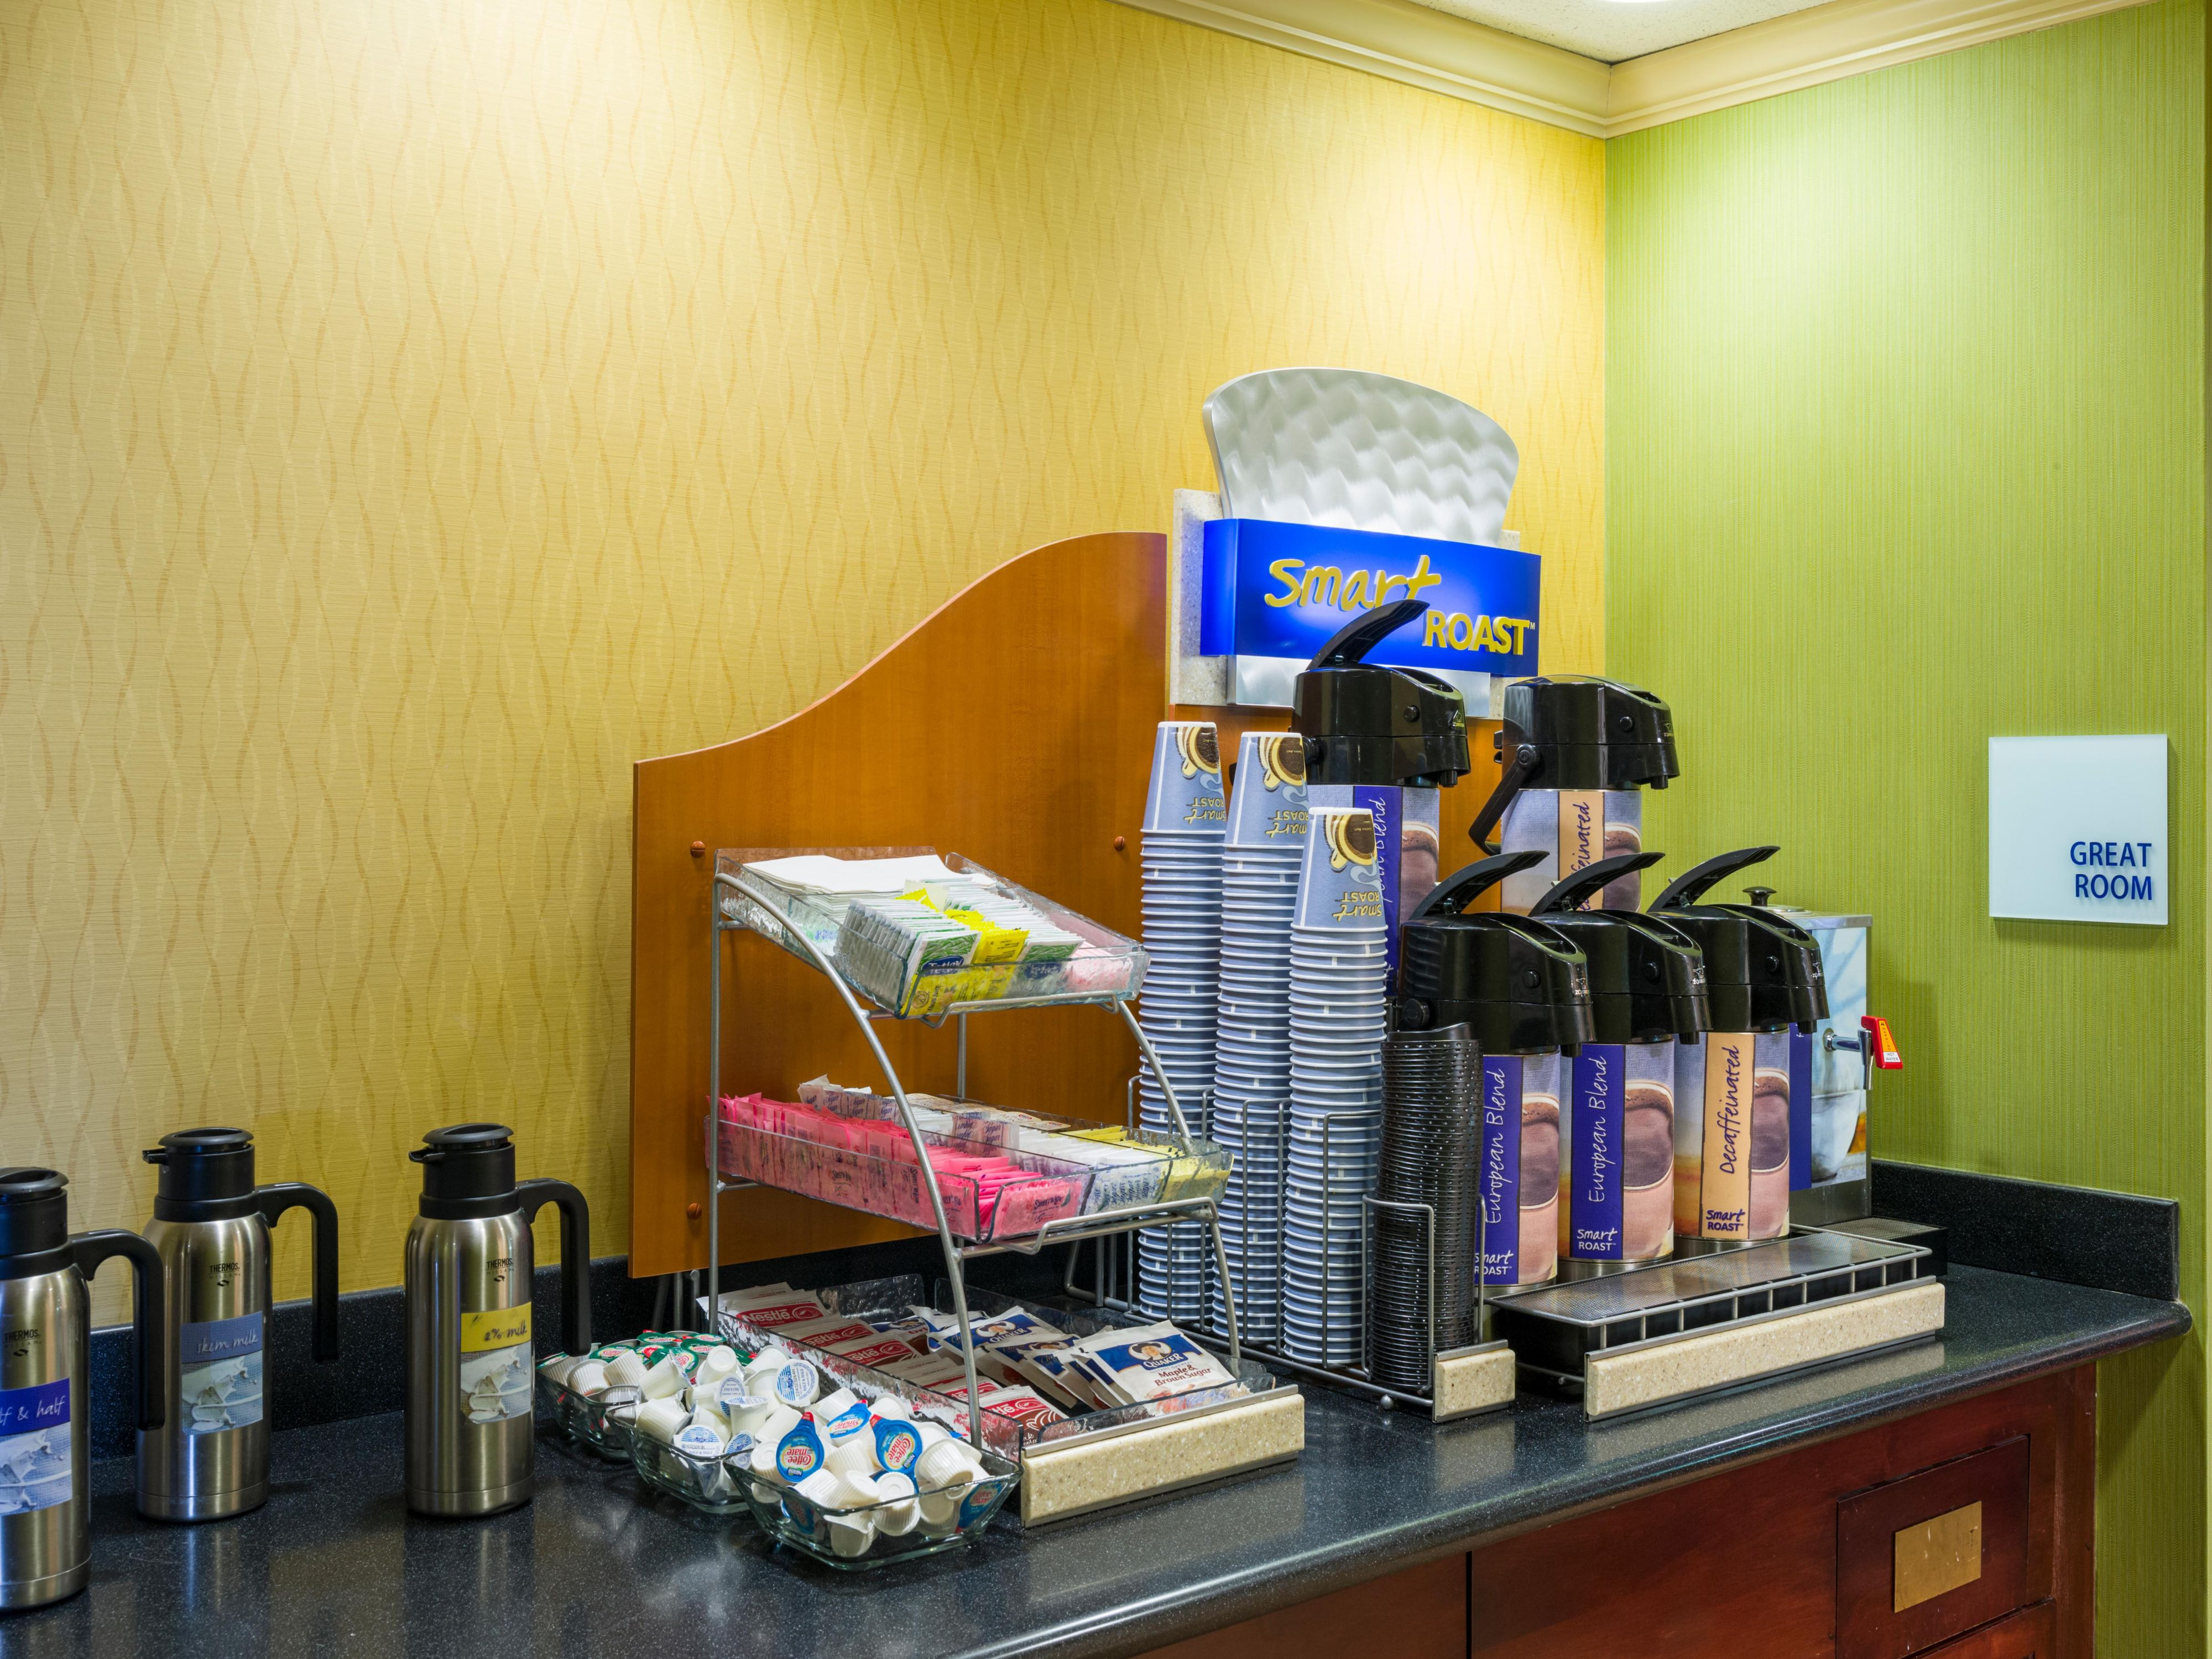 Coffee Station located in Breakfast Area